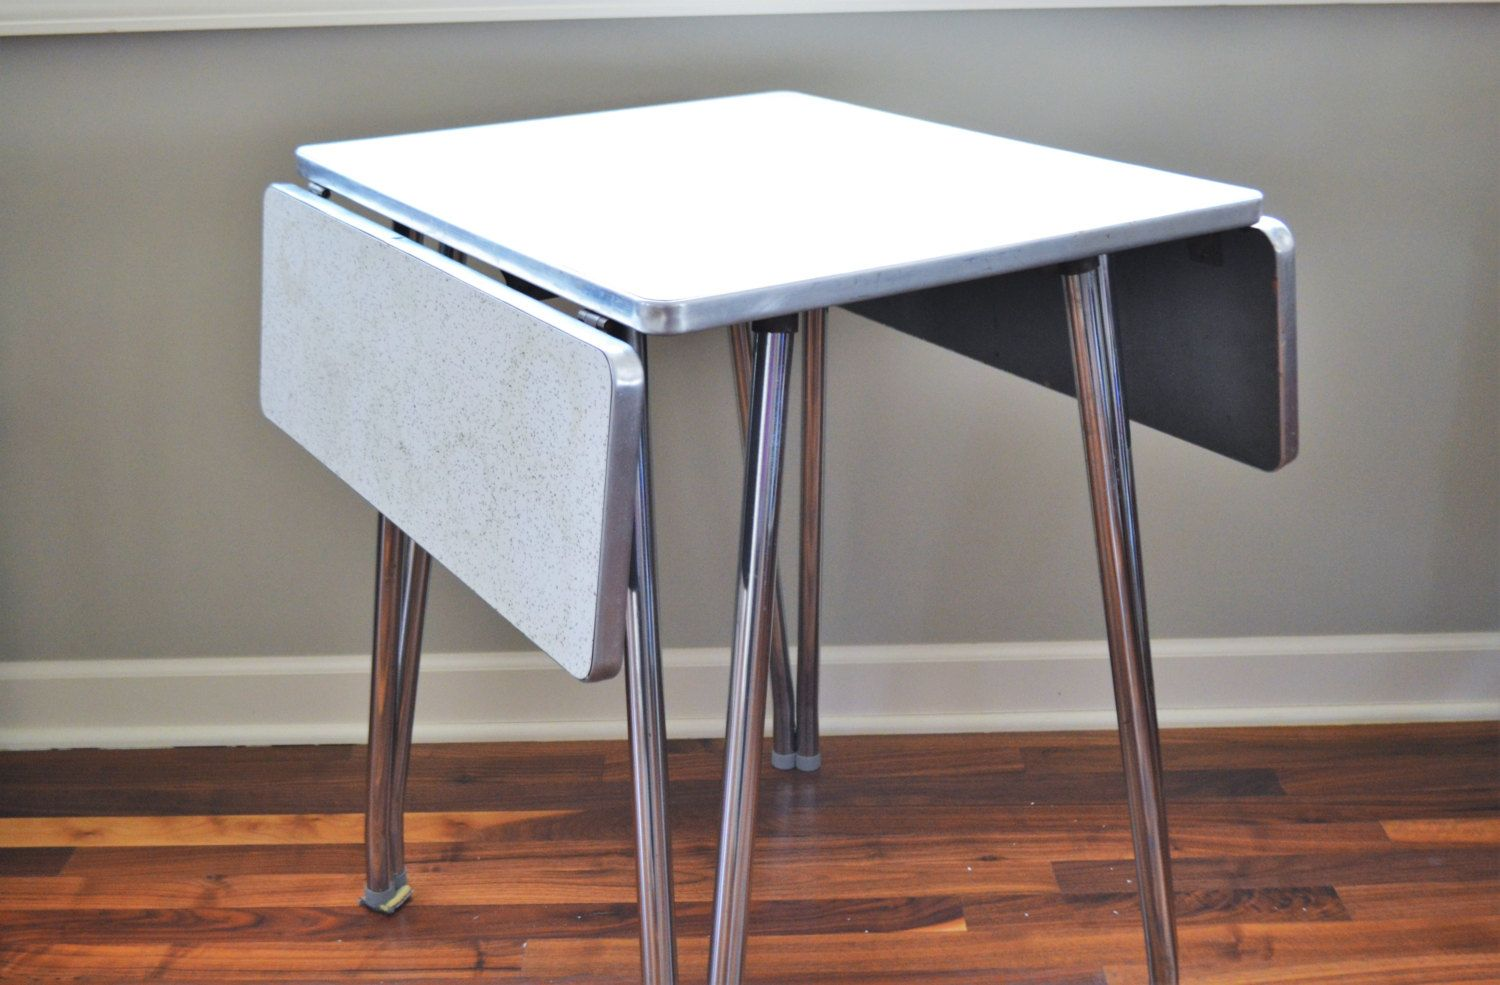 1950s Formica Top Drop Leaf Table With Chrome Legs Retro Etsy